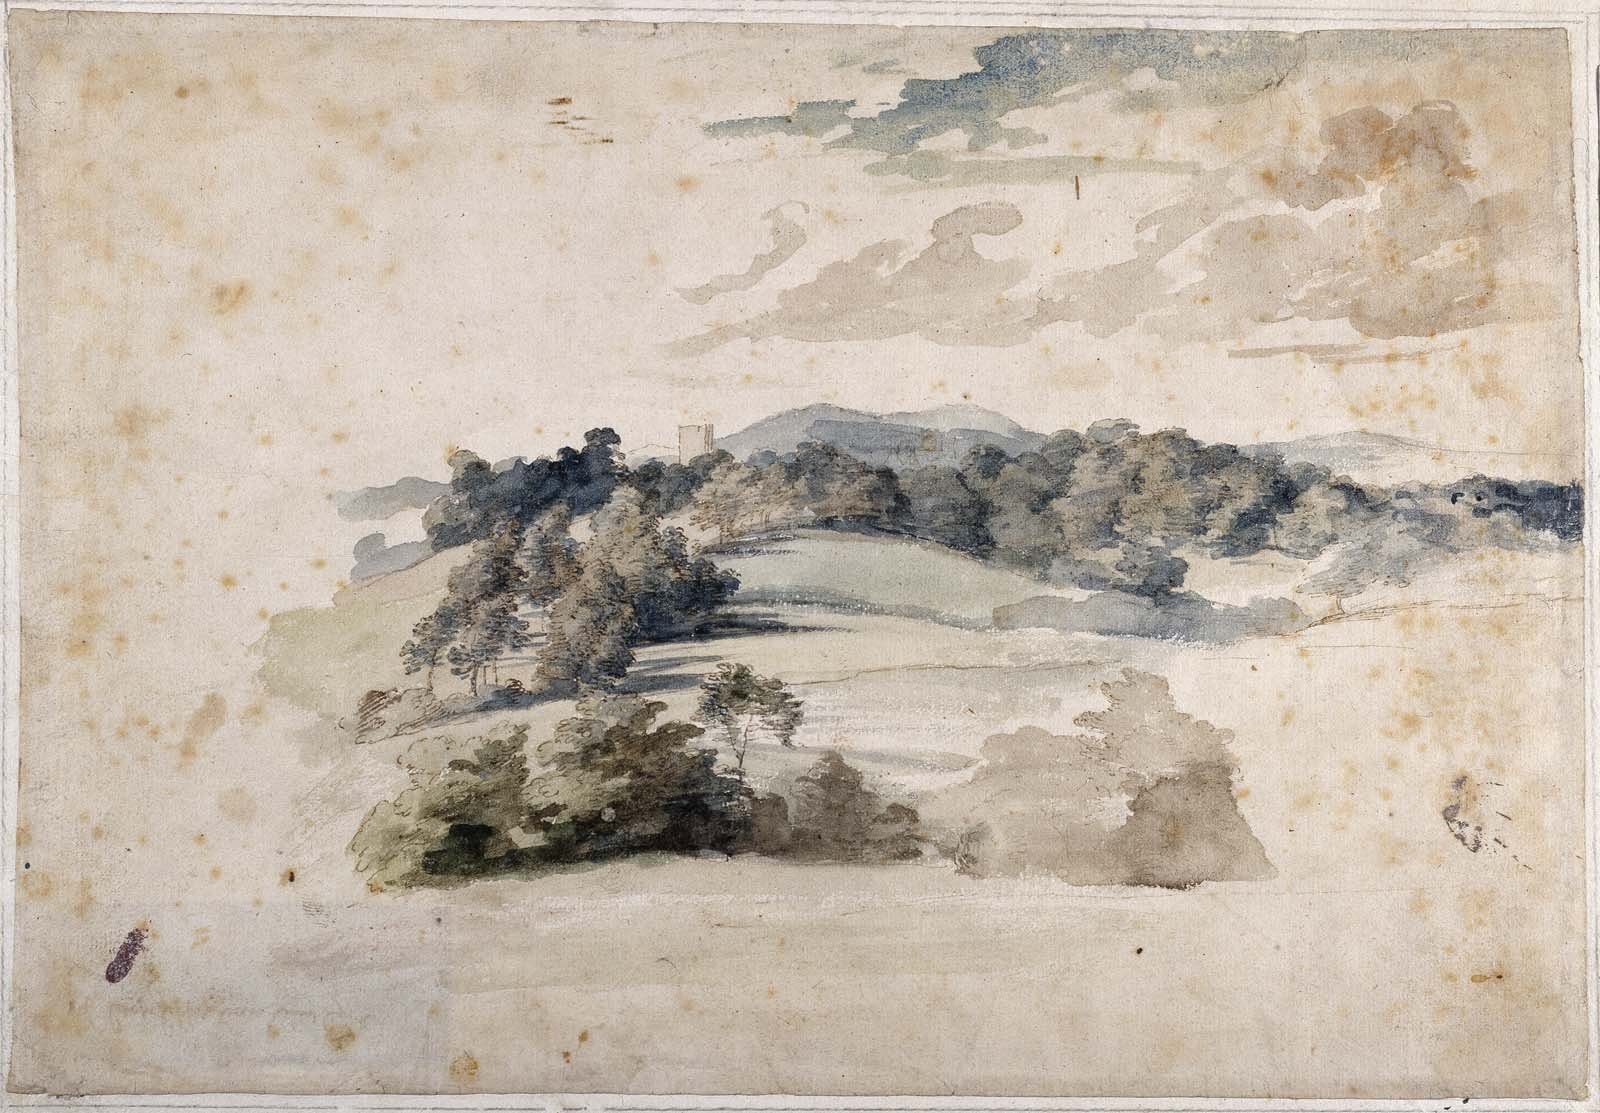 watercolour of fields and distant trees and shrubs under a clouded sky